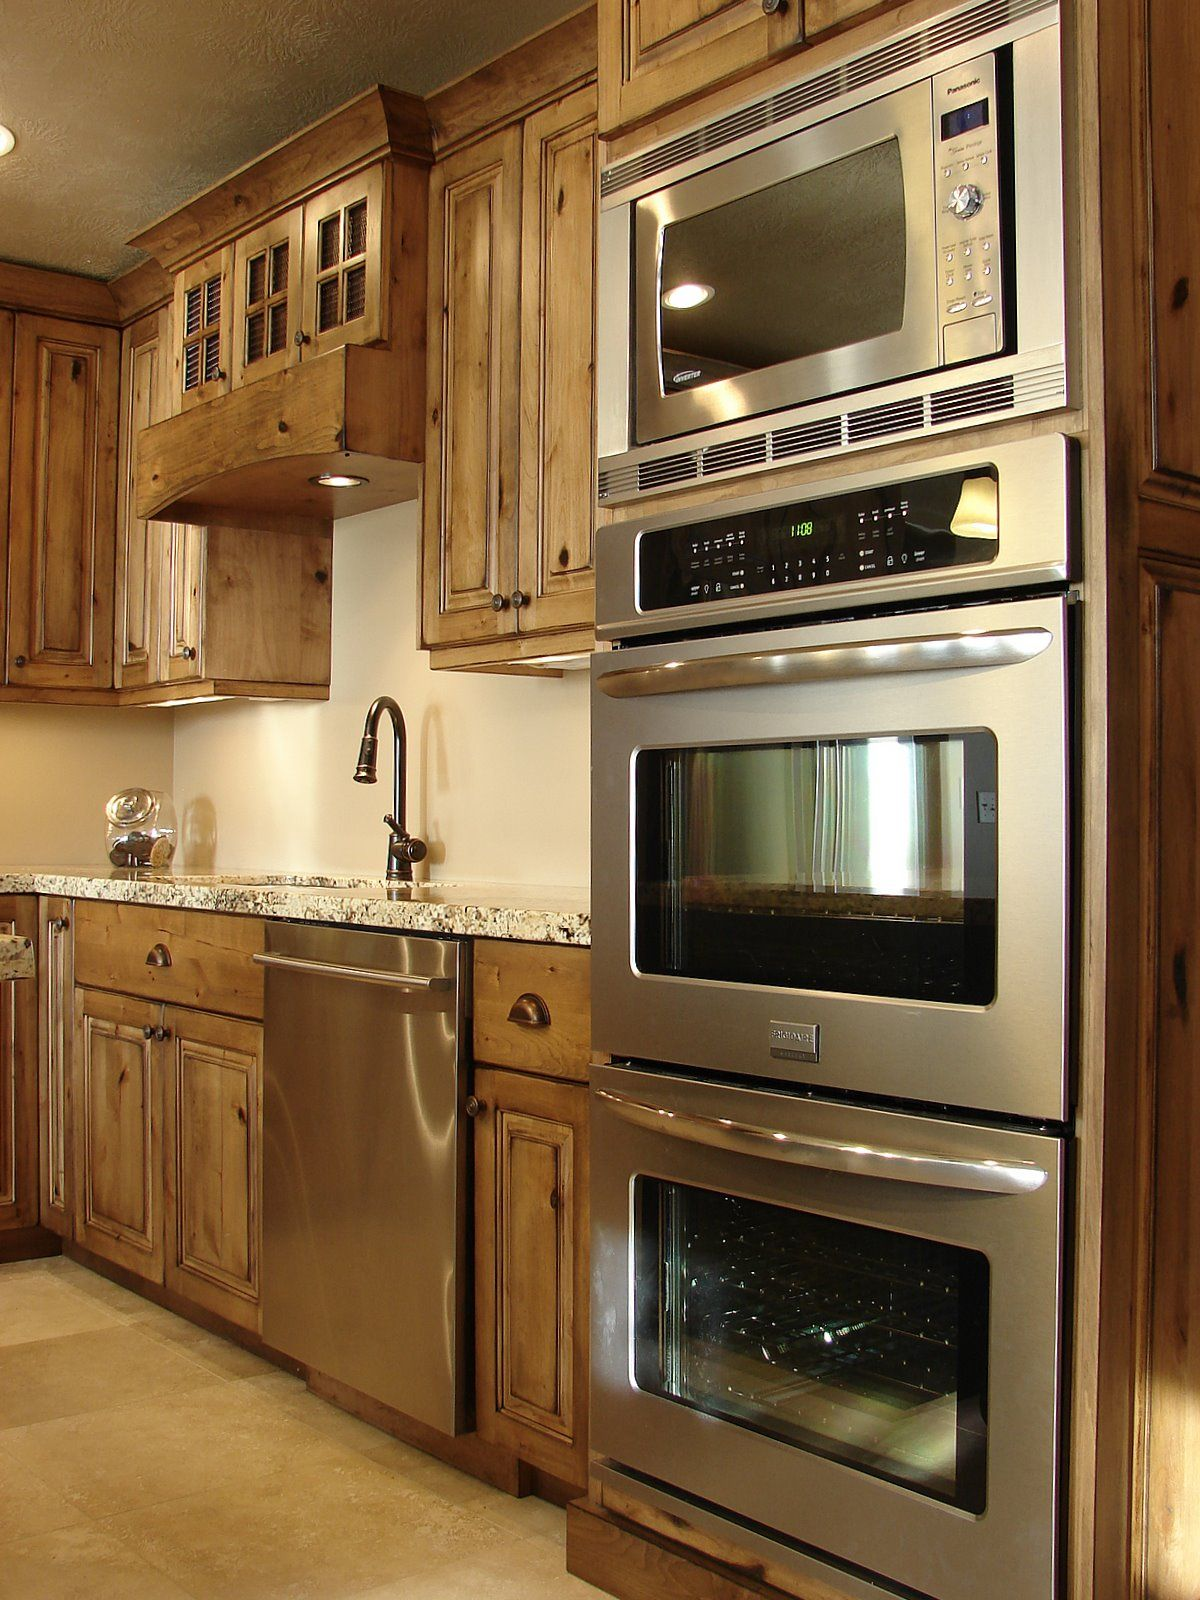 Lec Cabinets Rustic Knotty Alder Cabinets Alder Kitchen Cabinets Double Oven Kitchen Hickory Kitchen Cabinets